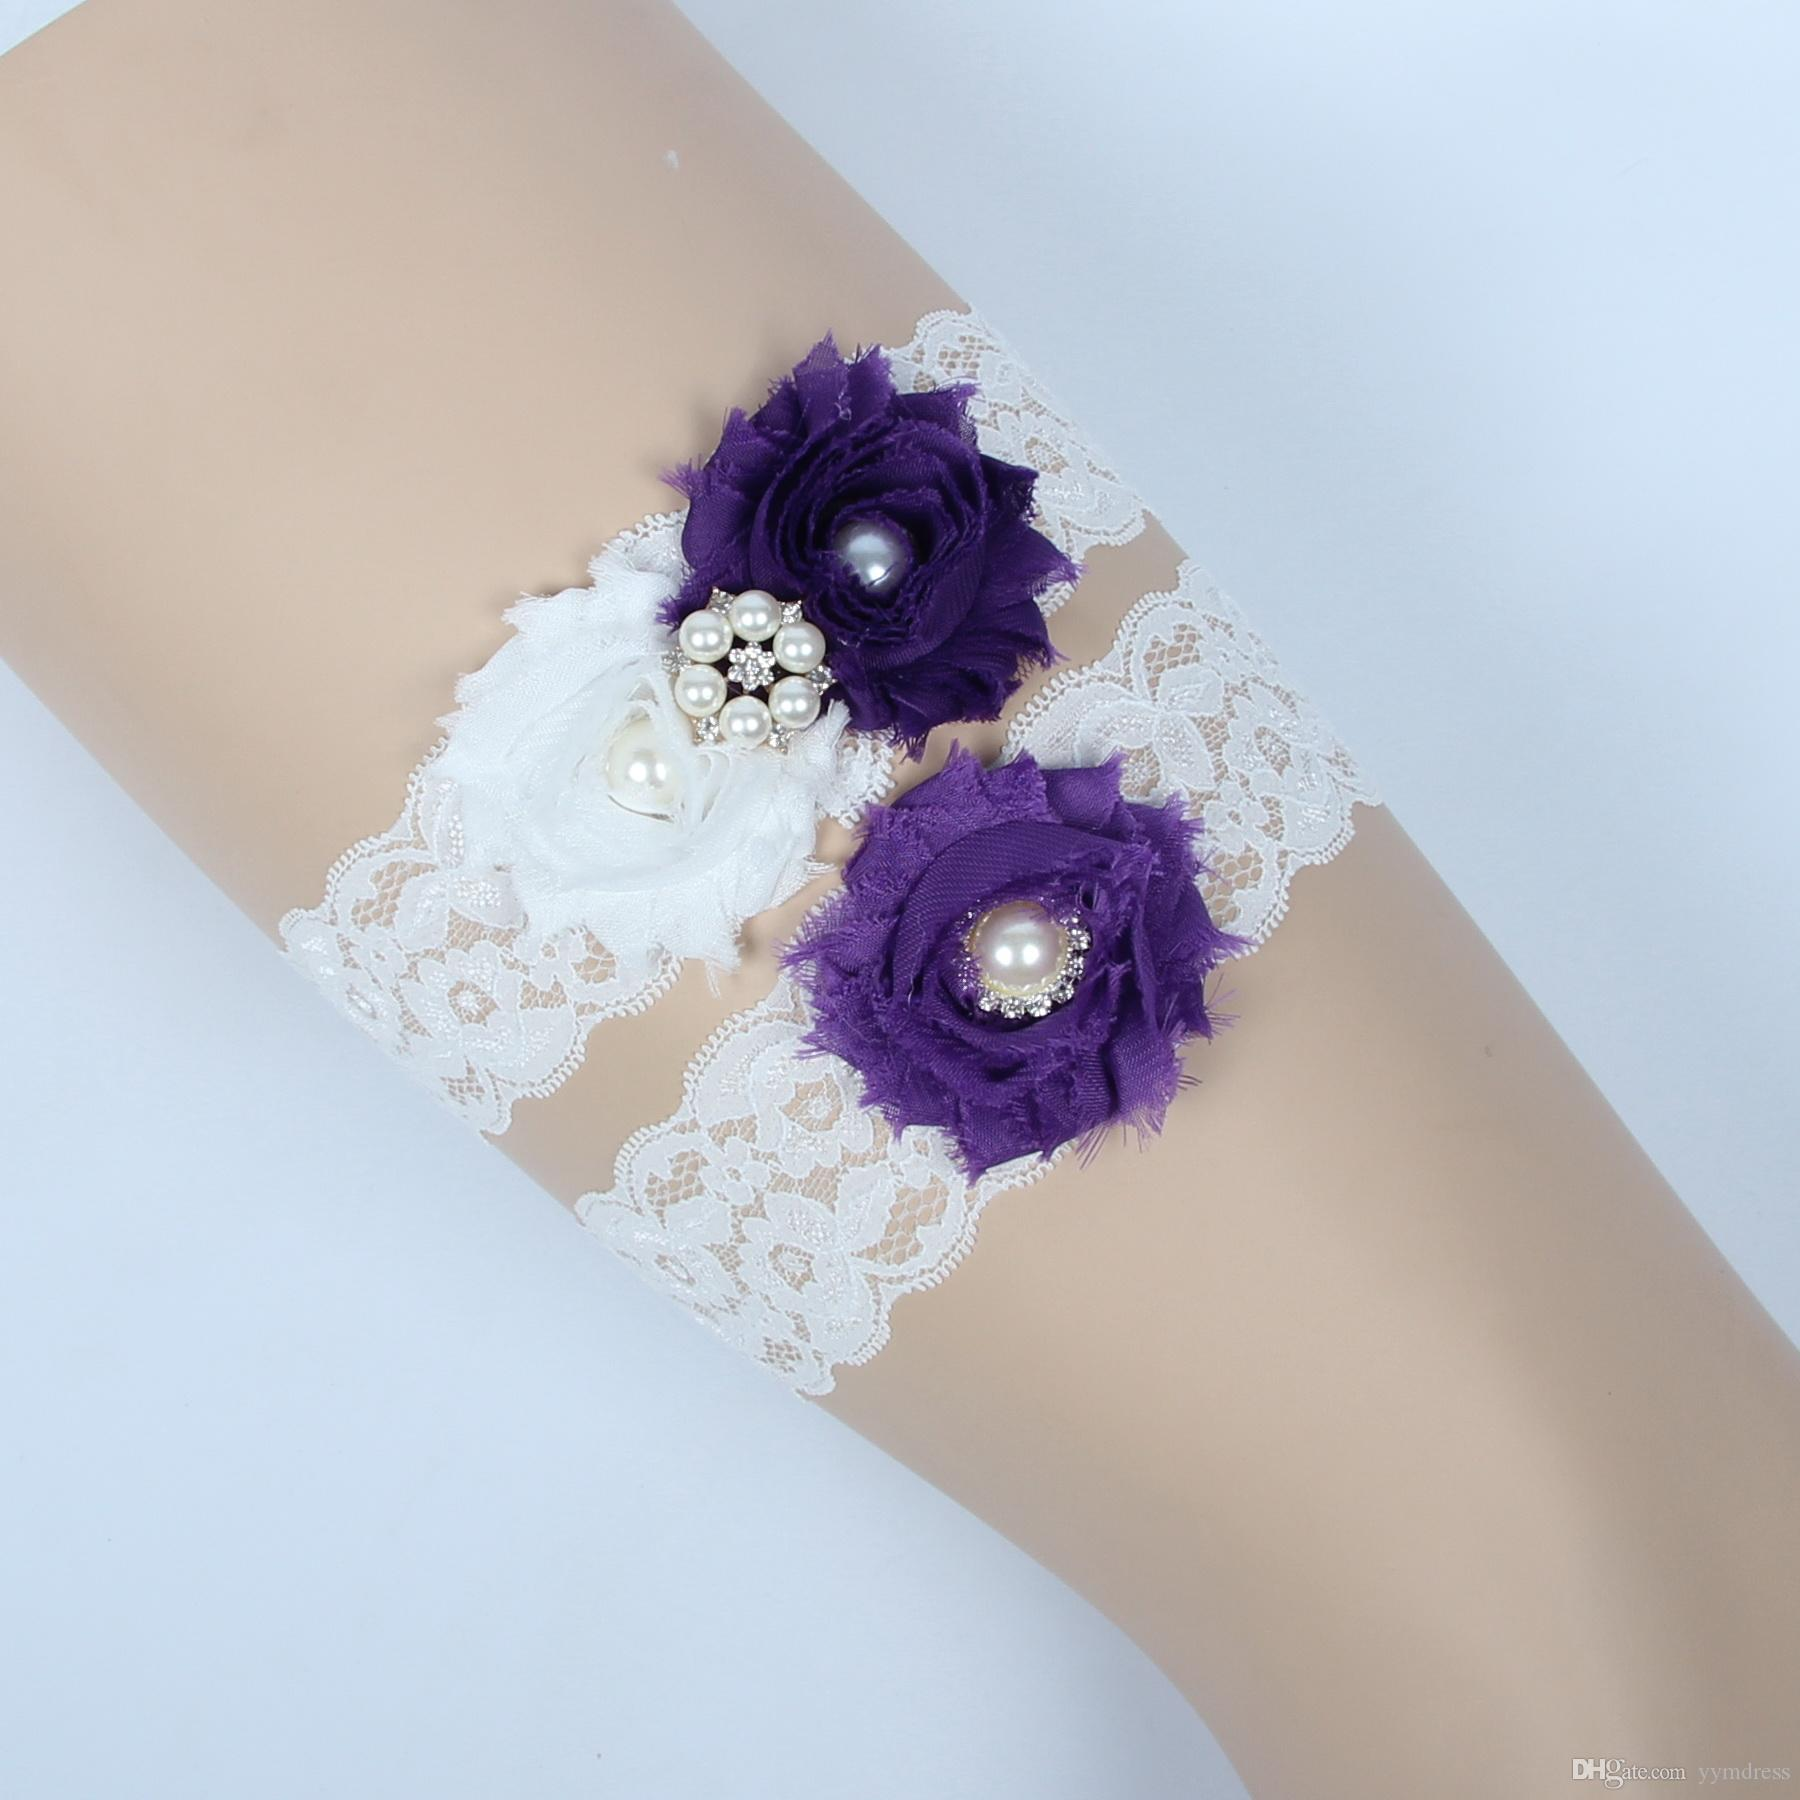 Vintage Bridal Garters Prom Garter Bridal Wedding Garter 2 Piece set Purple Lace Rhinestones Pearls Crystals In Stock Cheap Plus Size